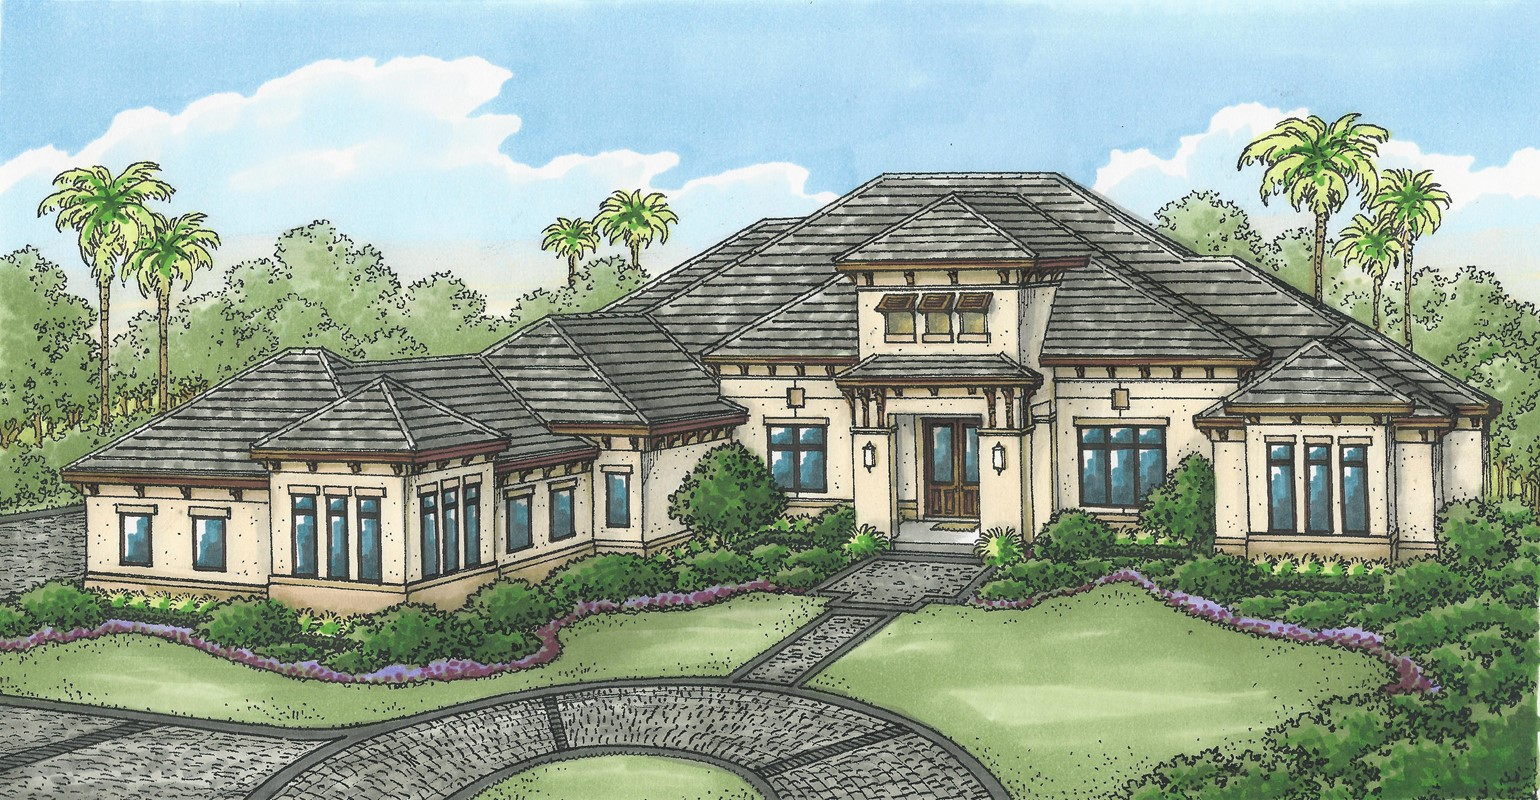 Stock's Atherton Model  Under Construction in Quail West